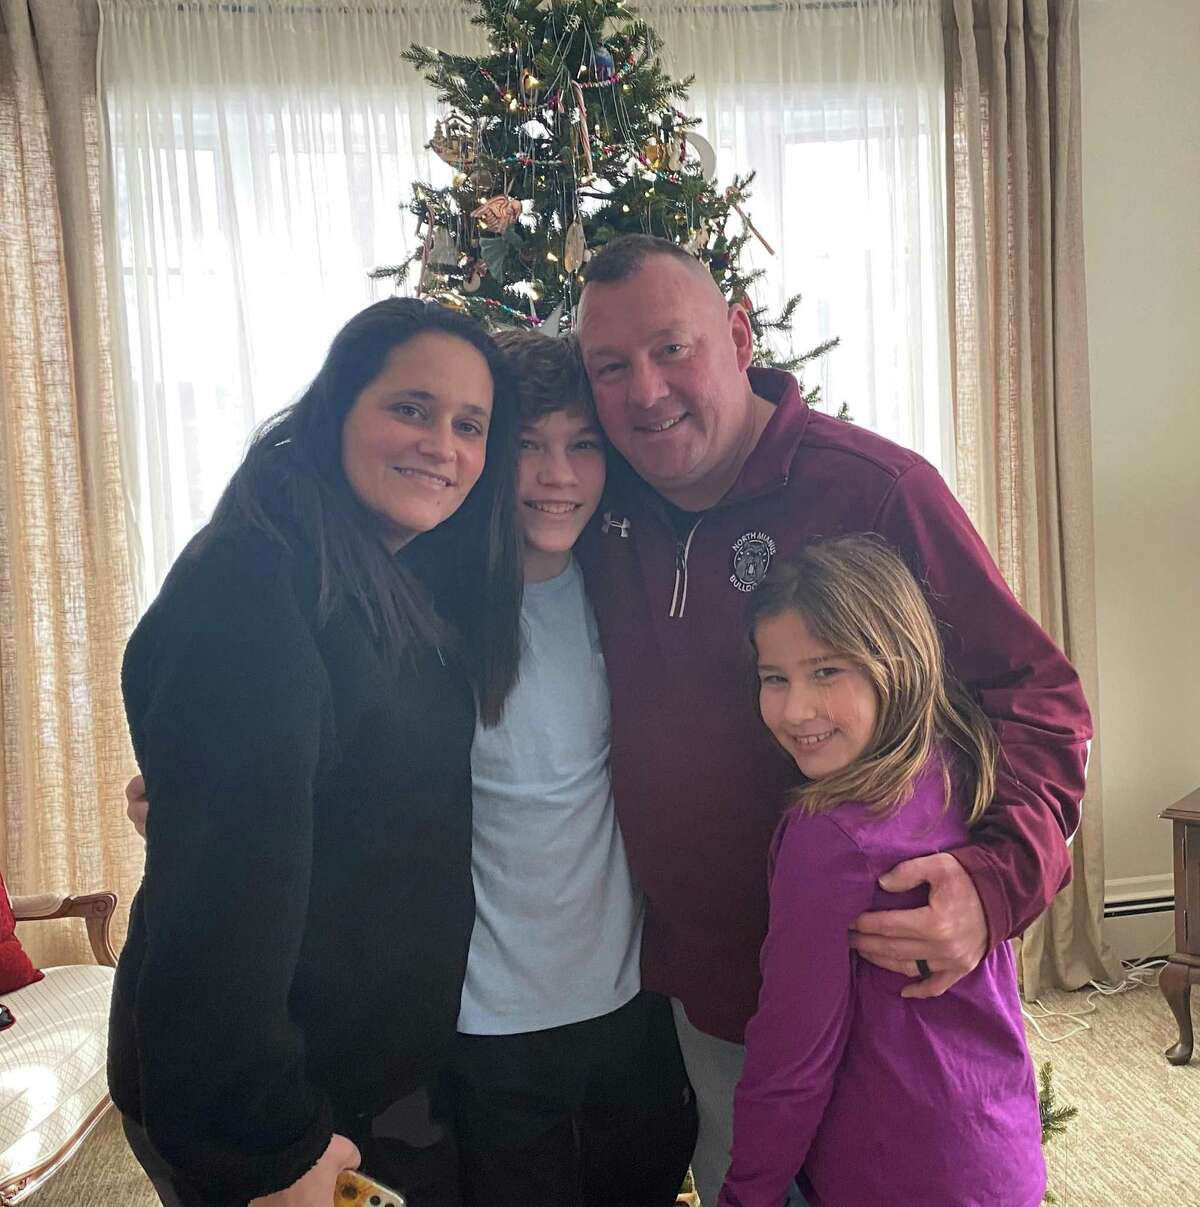 The O'Donnell family is spending Christmas in Connecticut together, after Sean O'Donnell returned from a deployment overseas. He and his wife, Kim, surprised their children Matthew and Keira.